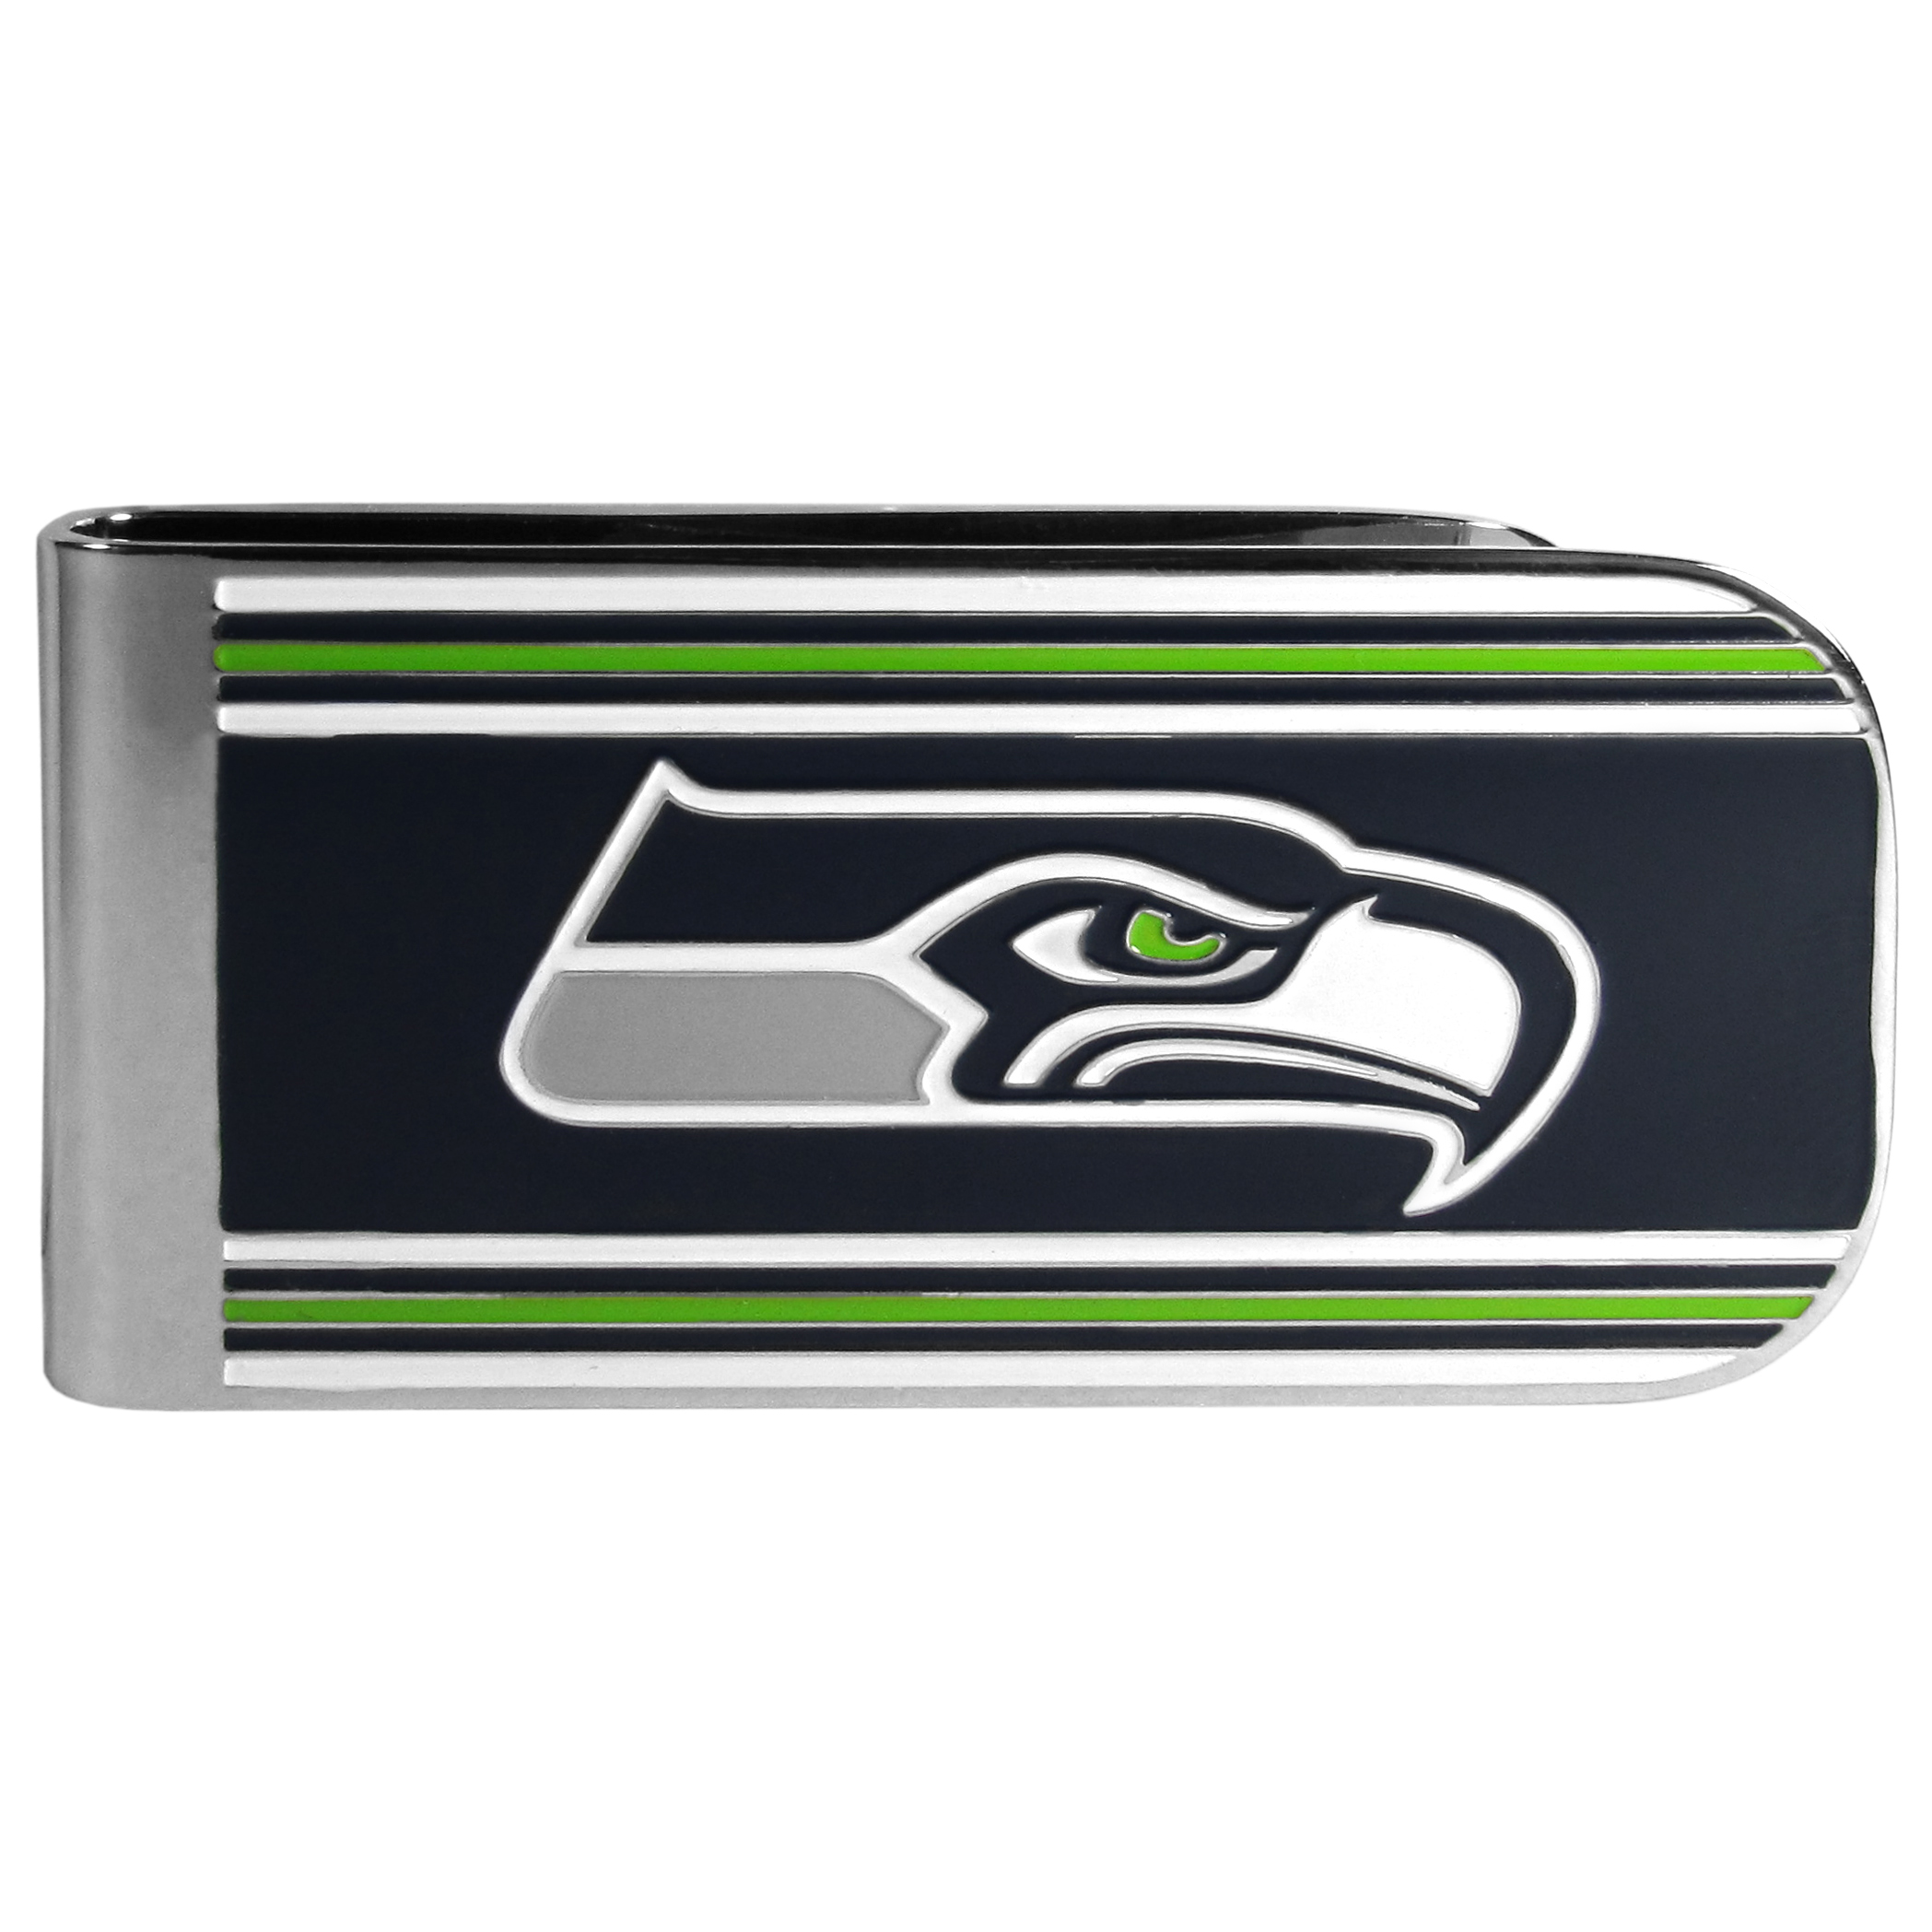 Seattle Seahawks MVP Money Clip - Our MVP money clip is made of high quality steel with a chrome overlay and enameled team colors and logo. The exceptional craftmanship on this piece makes it a men's fashion accessory that any fan would be proud to own. The cast detail in the Seattle Seahawks logo is perfectly detailed. The clip features an inner spring to hold your cash and cards securely in place.